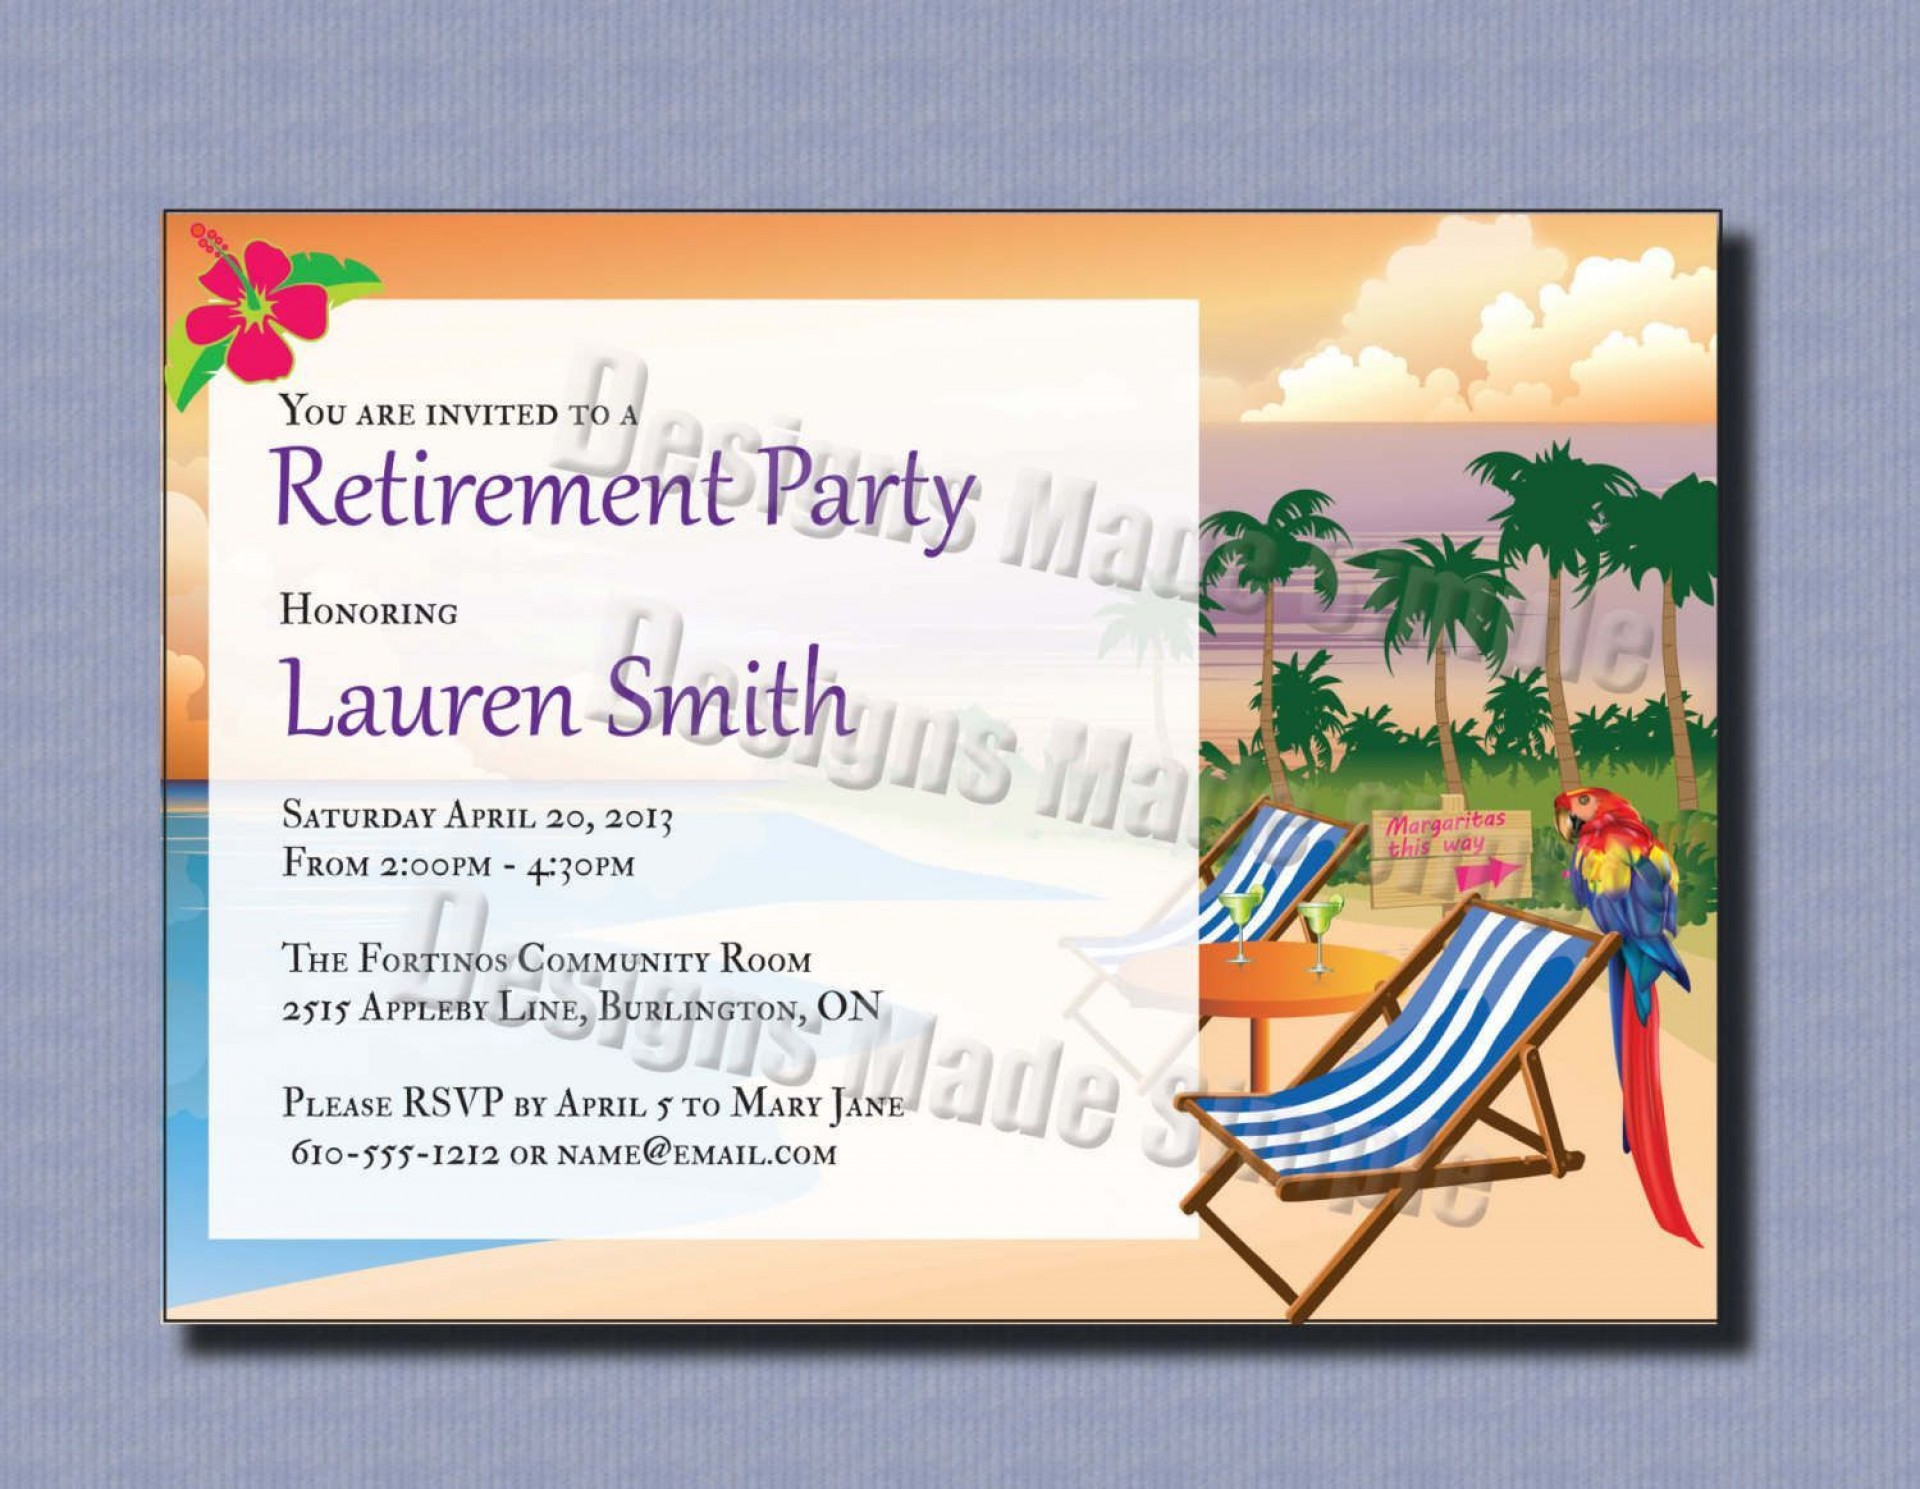 000 Phenomenal Retirement Invitation Template Free Inspiration  Party Word Download1920